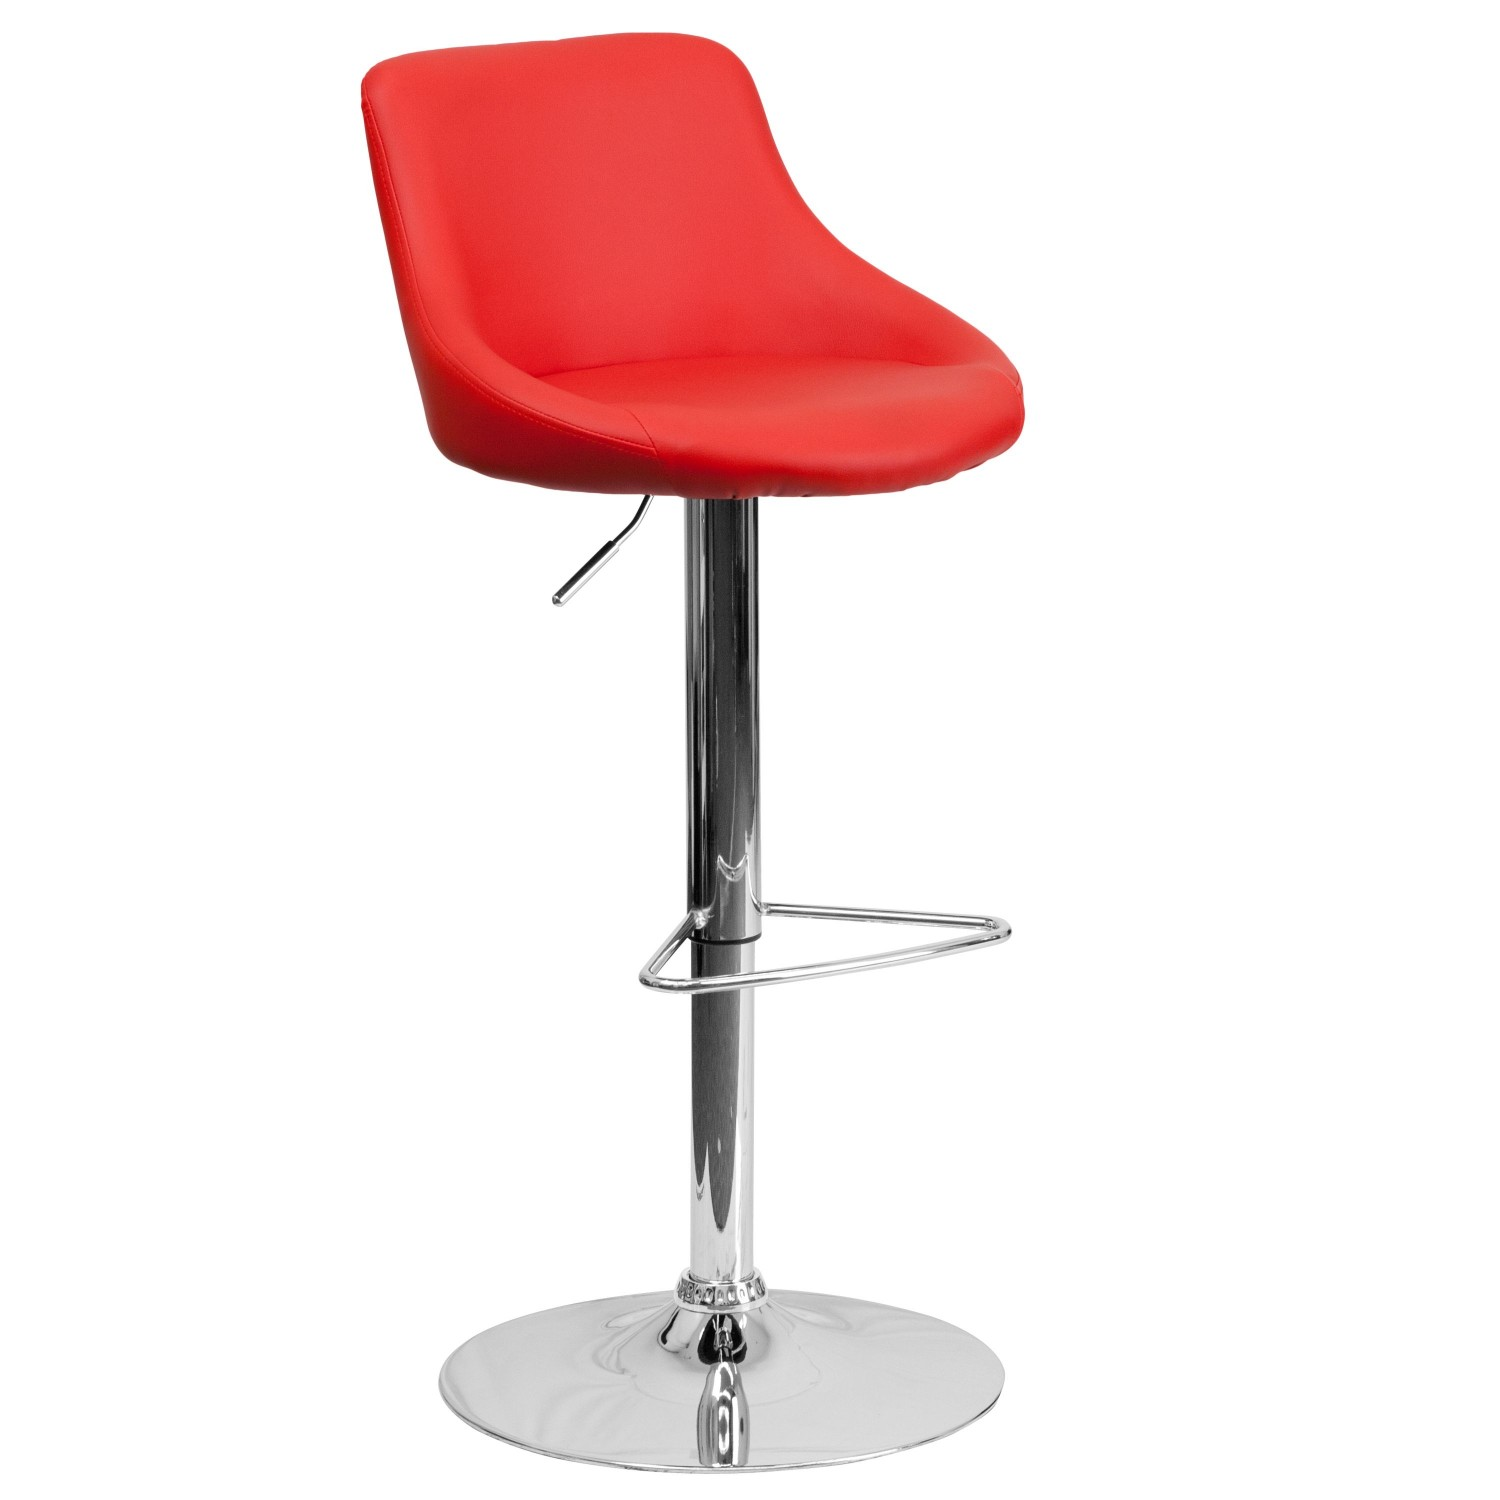 Flash Furniture CH-82028-MOD-RED-GG Contemporary Red Vinyl Bucket Seat Adjustable Height Bar Stool